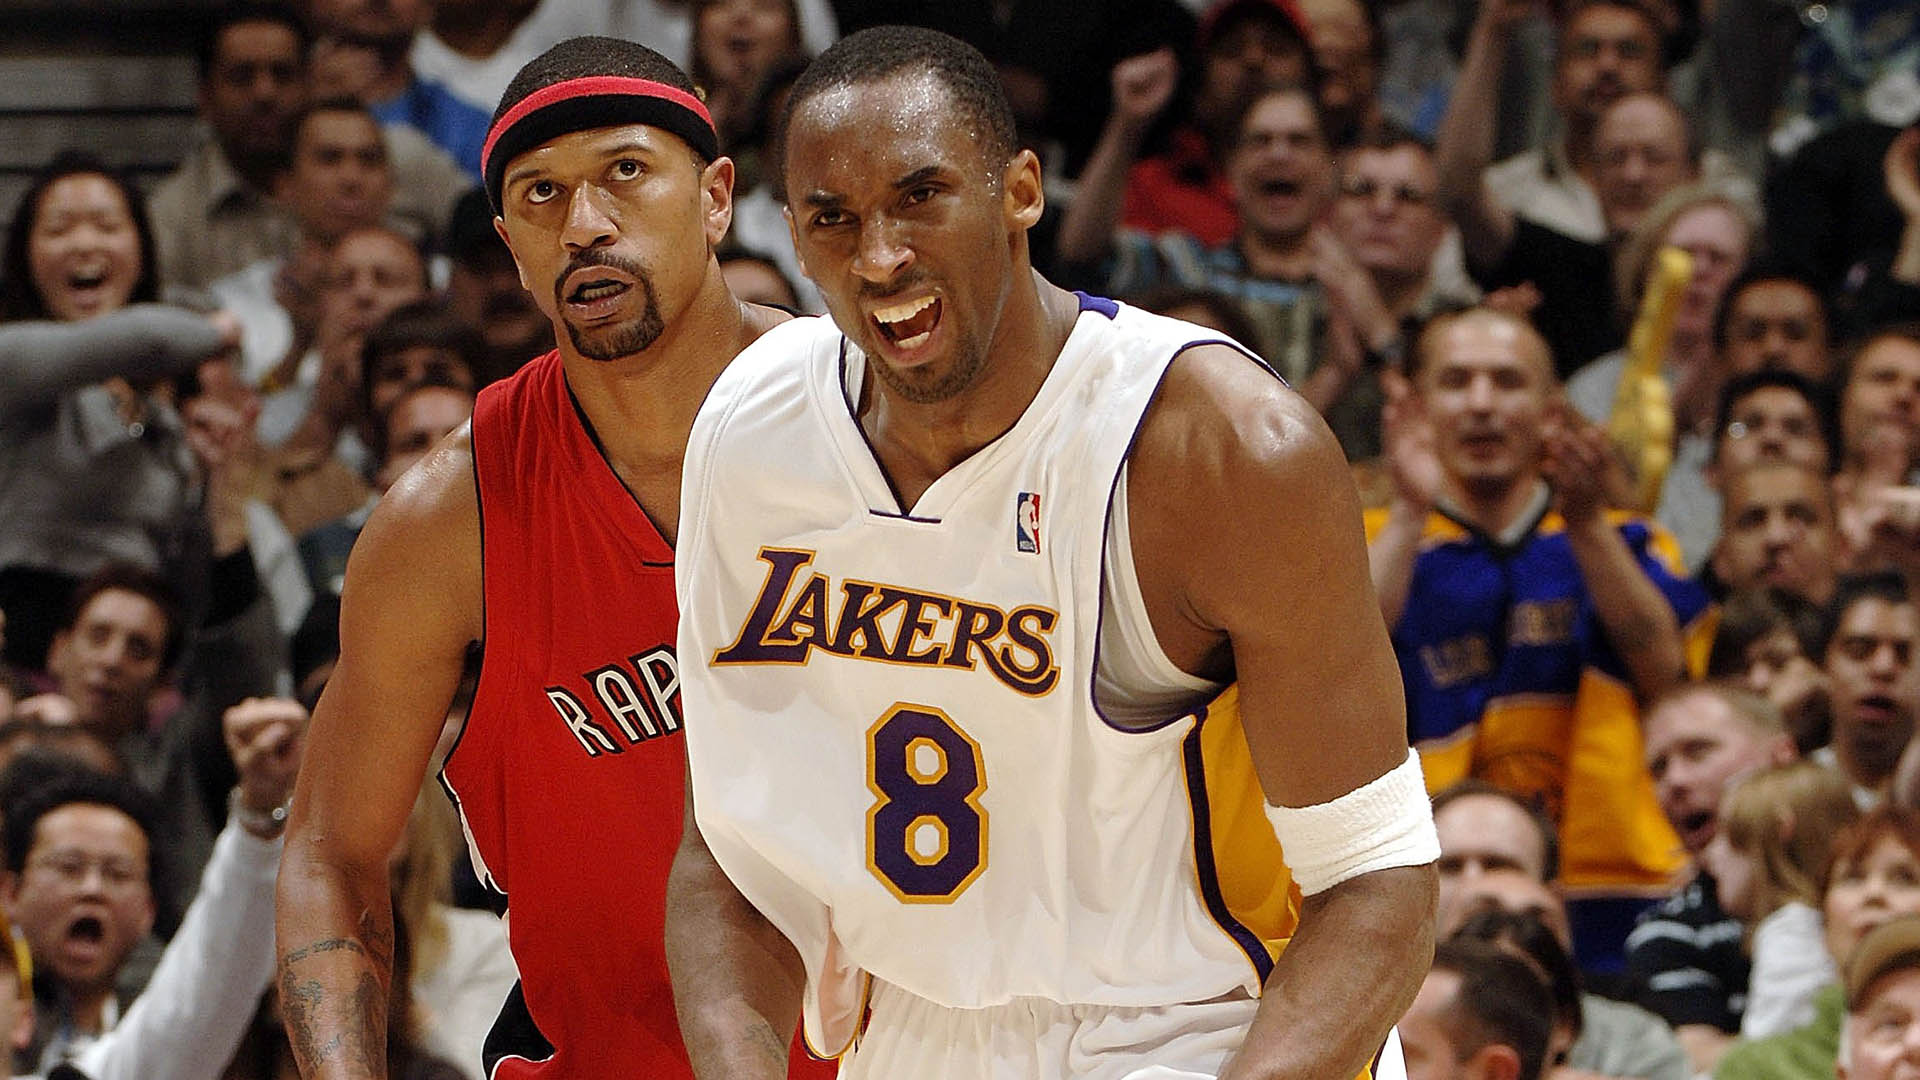 Top Moments: Kobe Bryant drops 81 points on Raptors in 2006